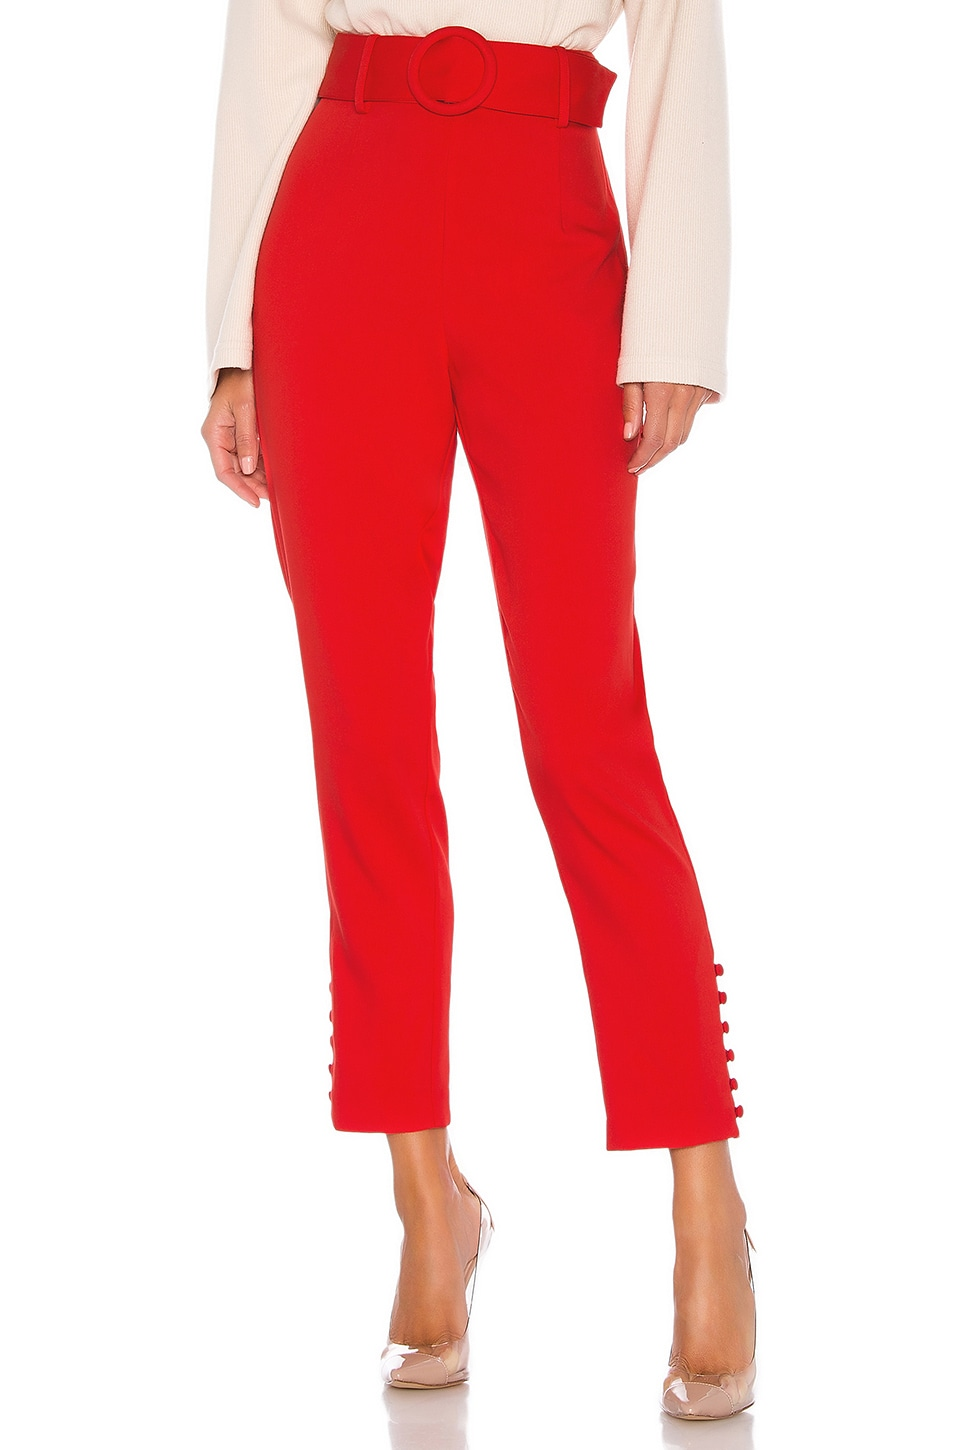 L'Academie The Ludovica Pant in Scarlet Red